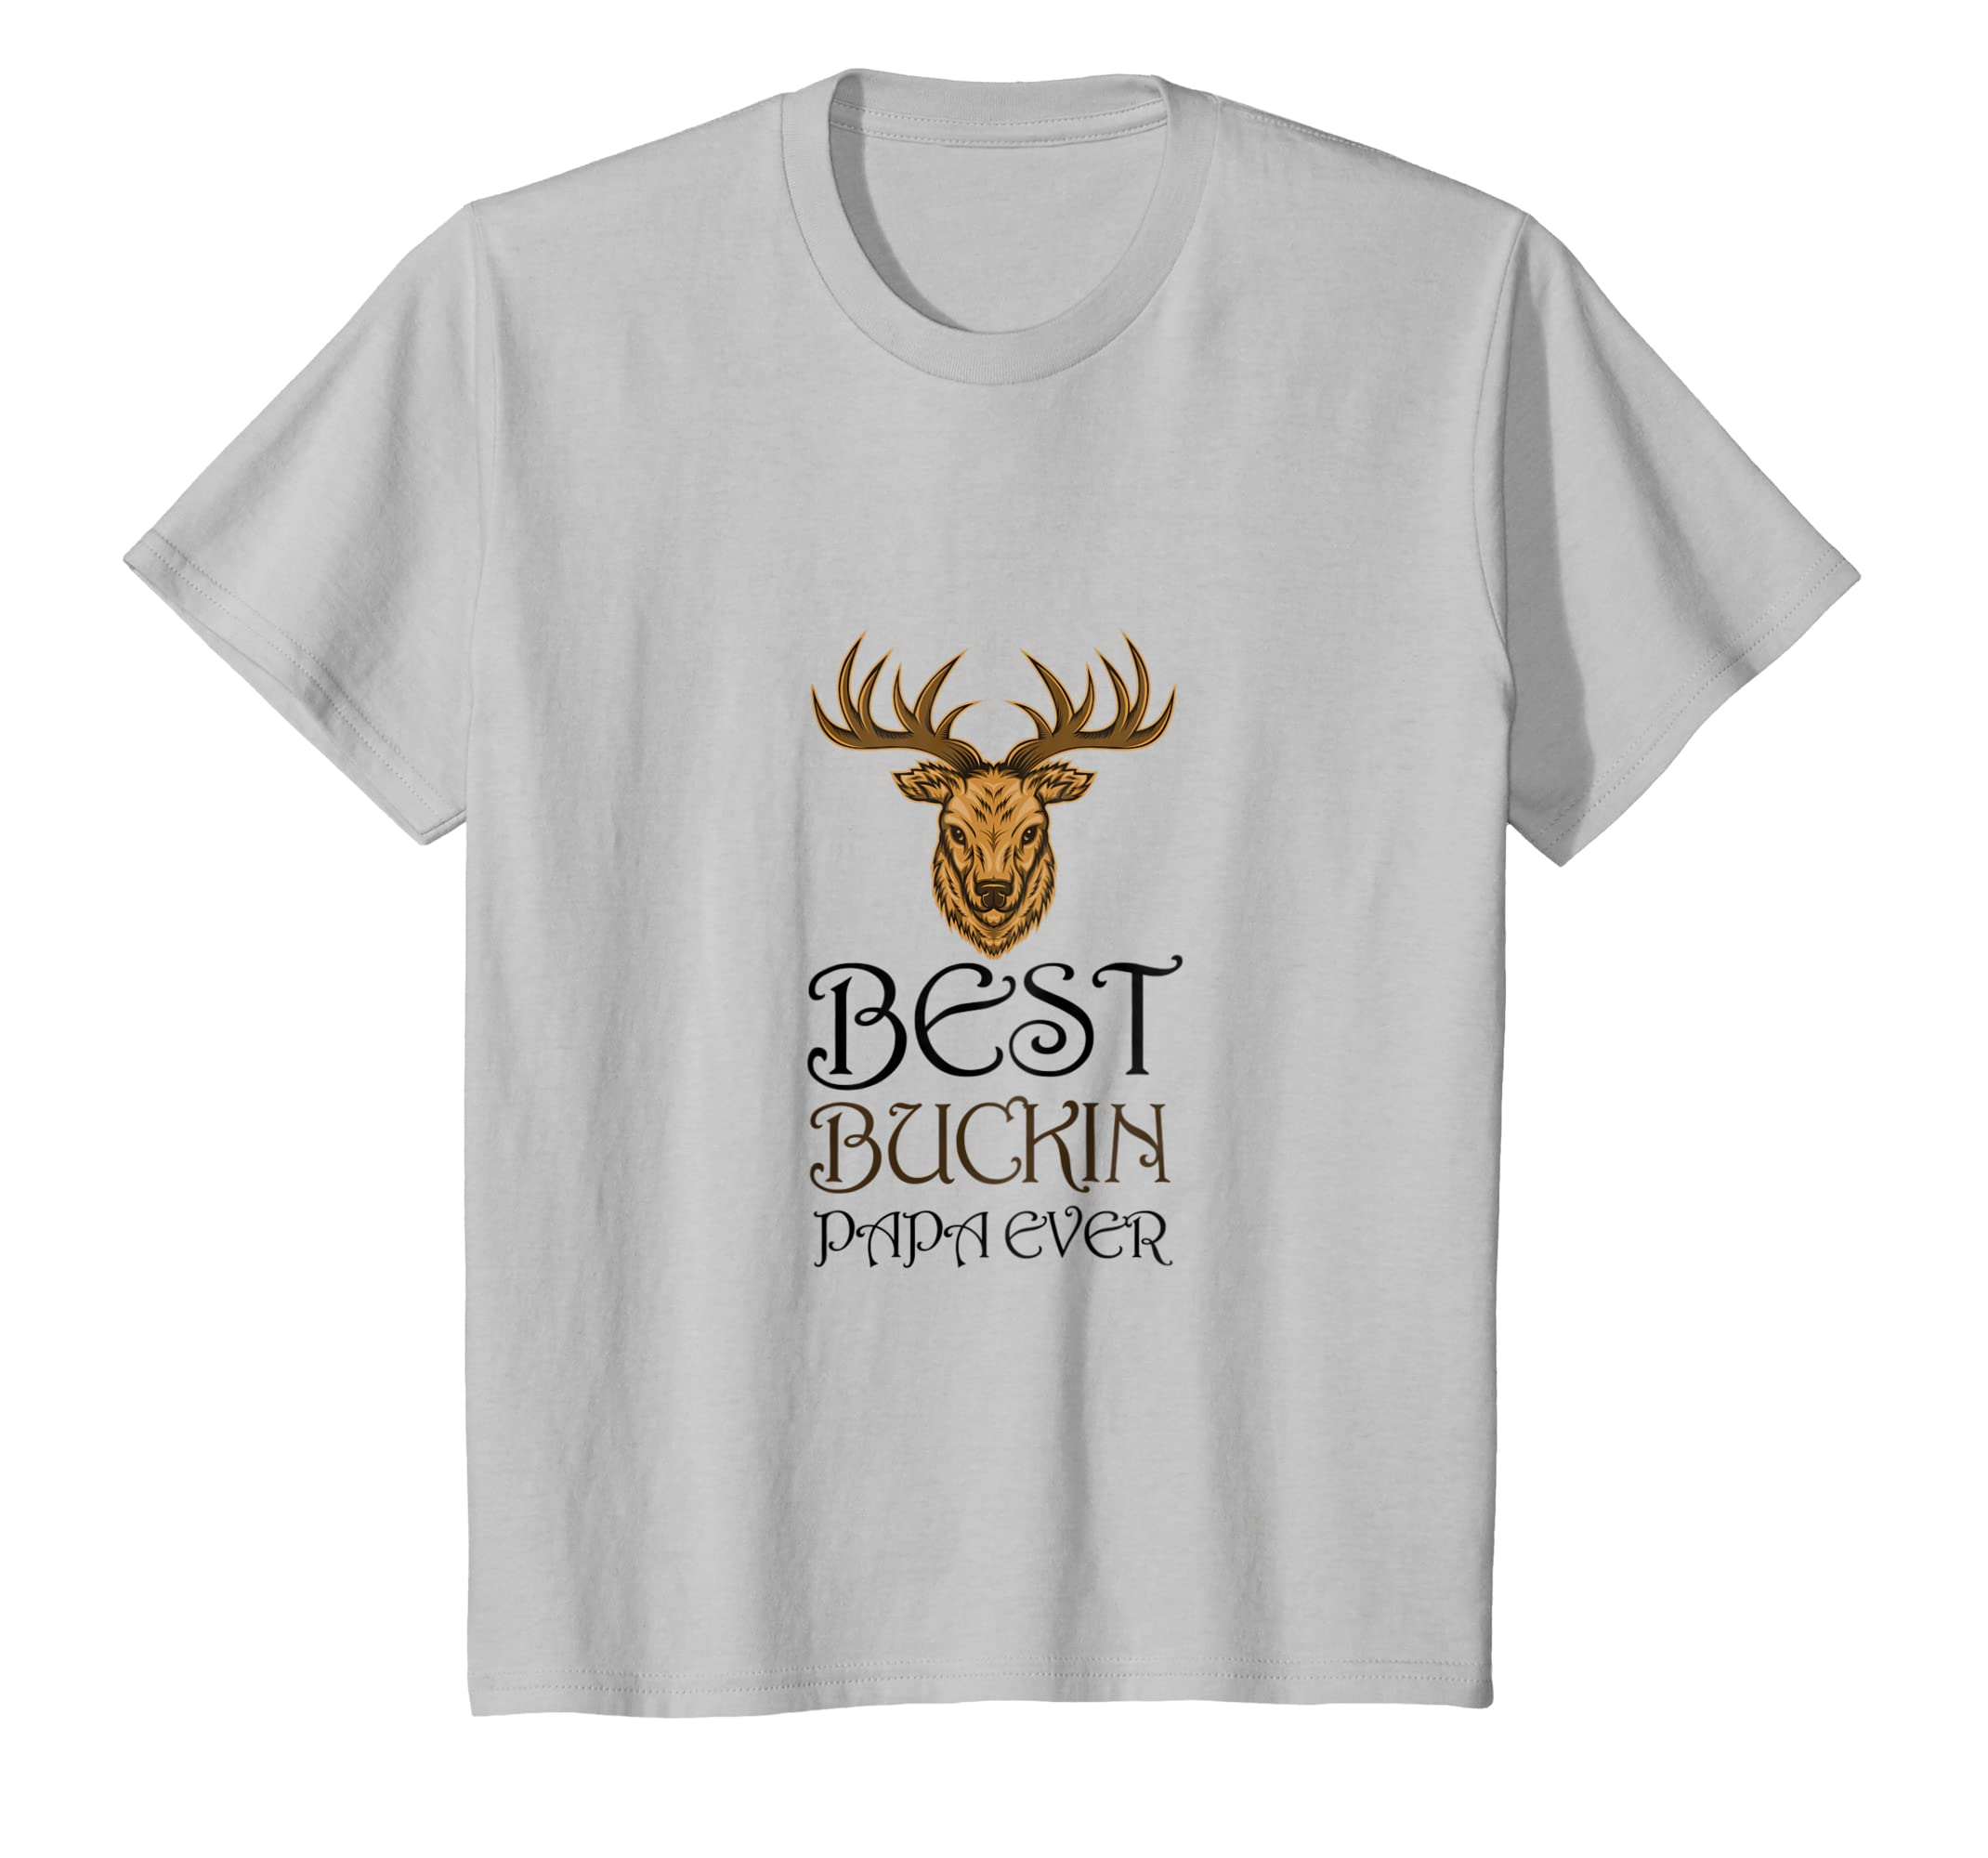 4df1f57984b Amazon.com  Best Buckin Papa Ever Buckin Dad Deer Hunt Father T-shirt   Clothing